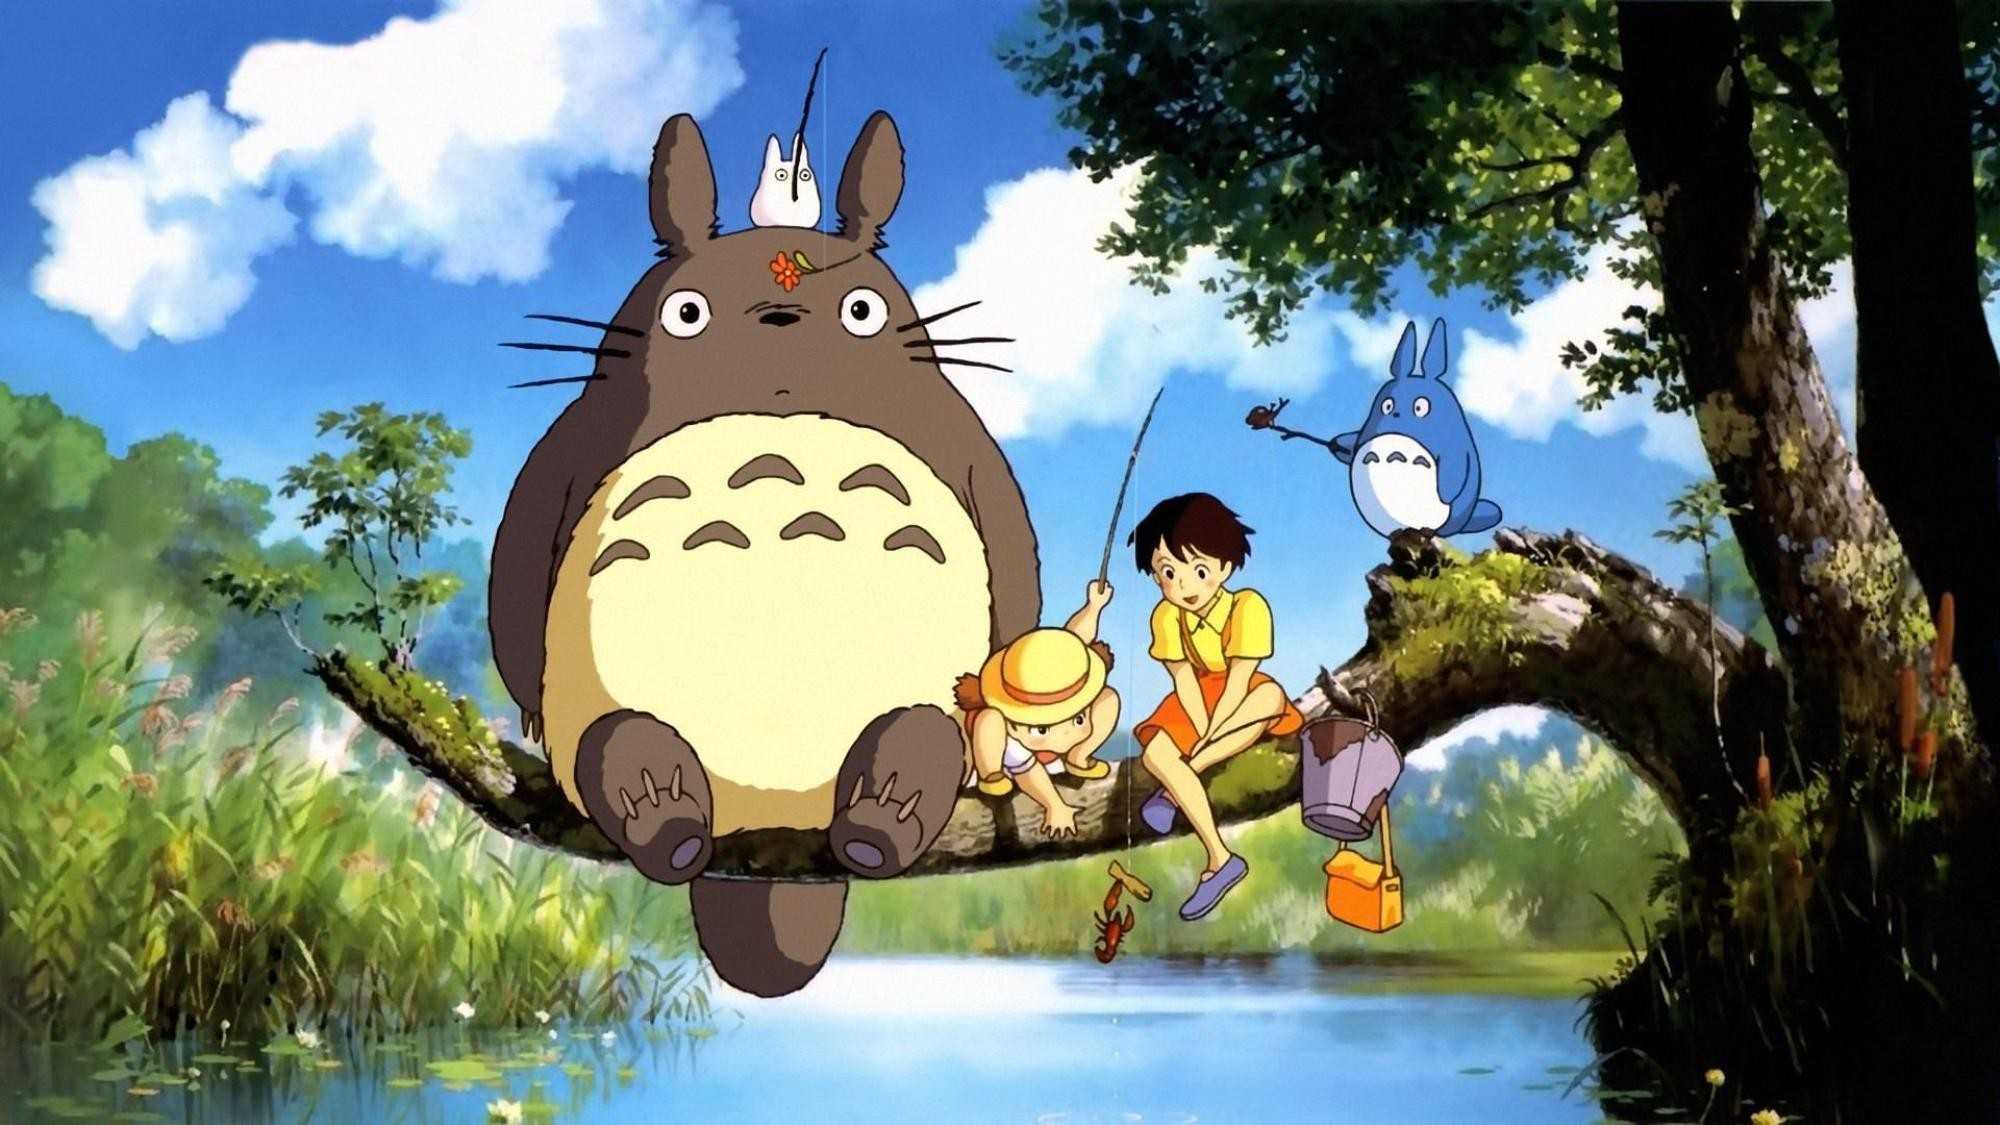 wanna work on the new studio ghibli film?